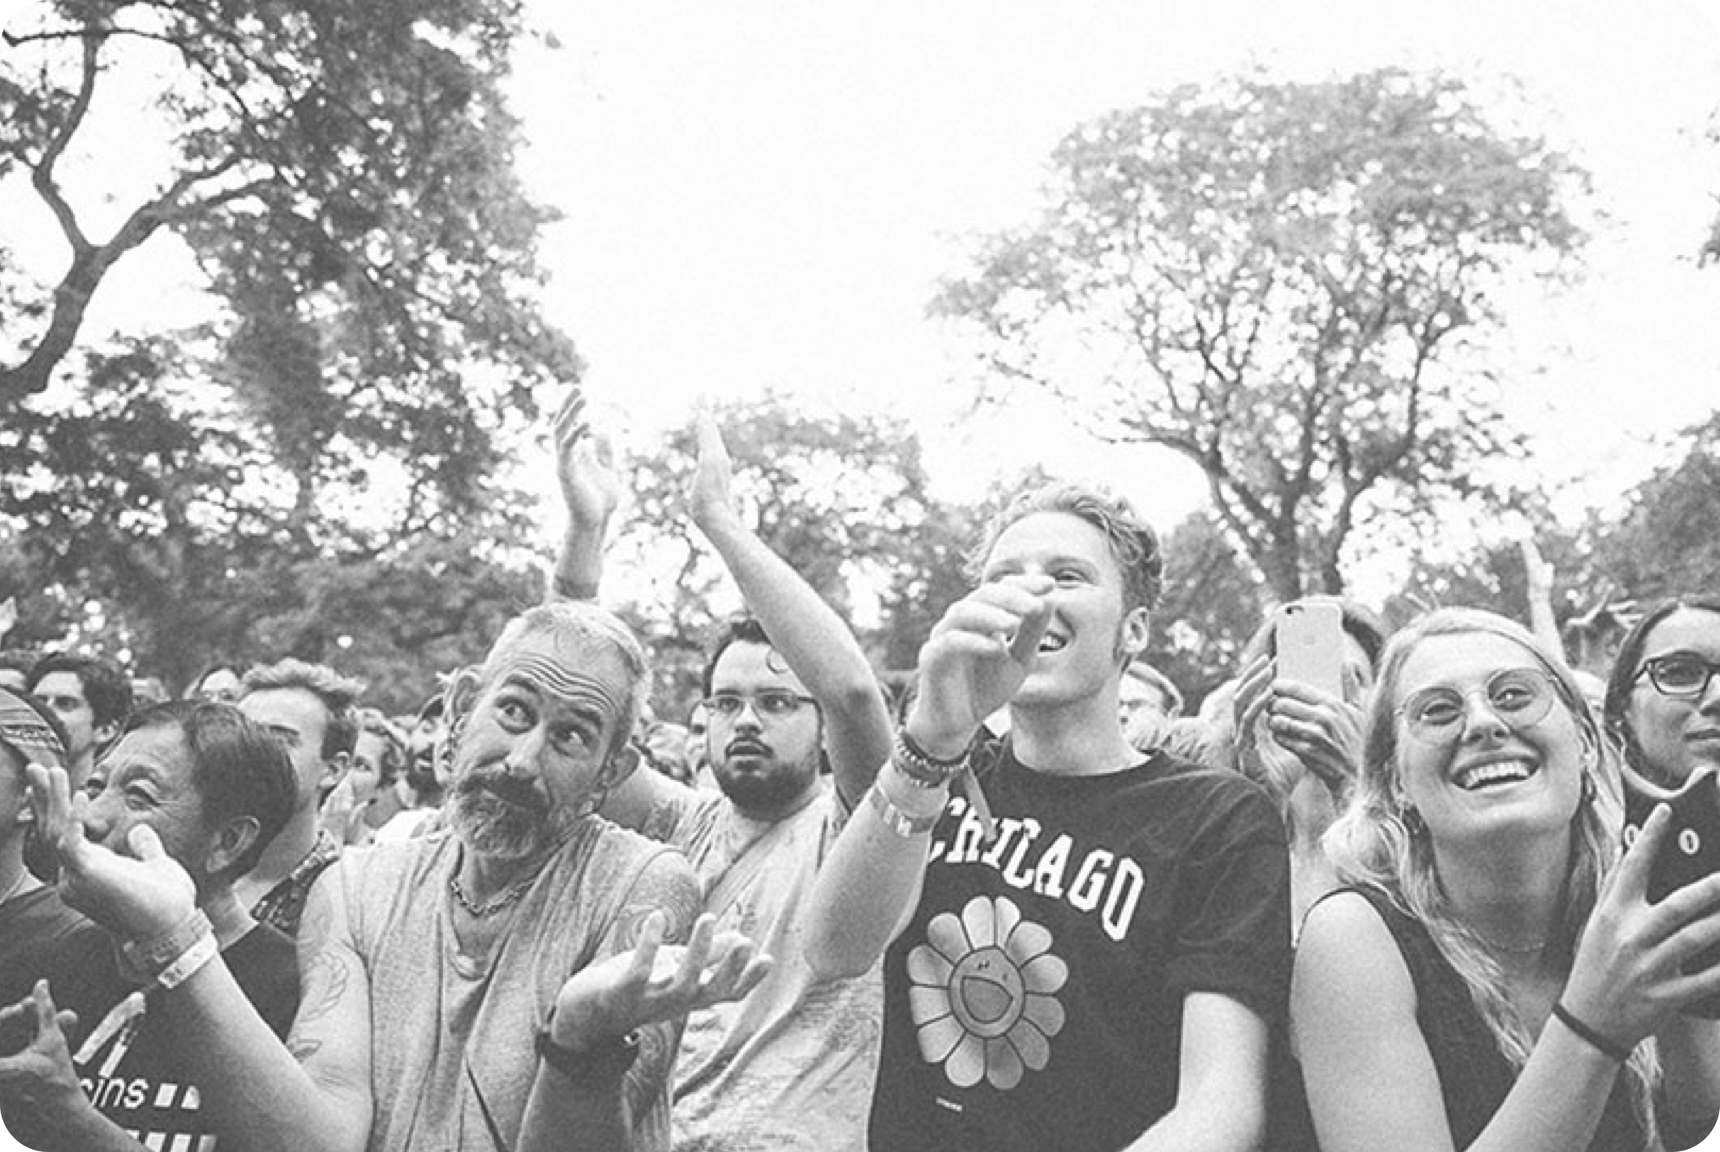 Group of people smiling and clapping their hands